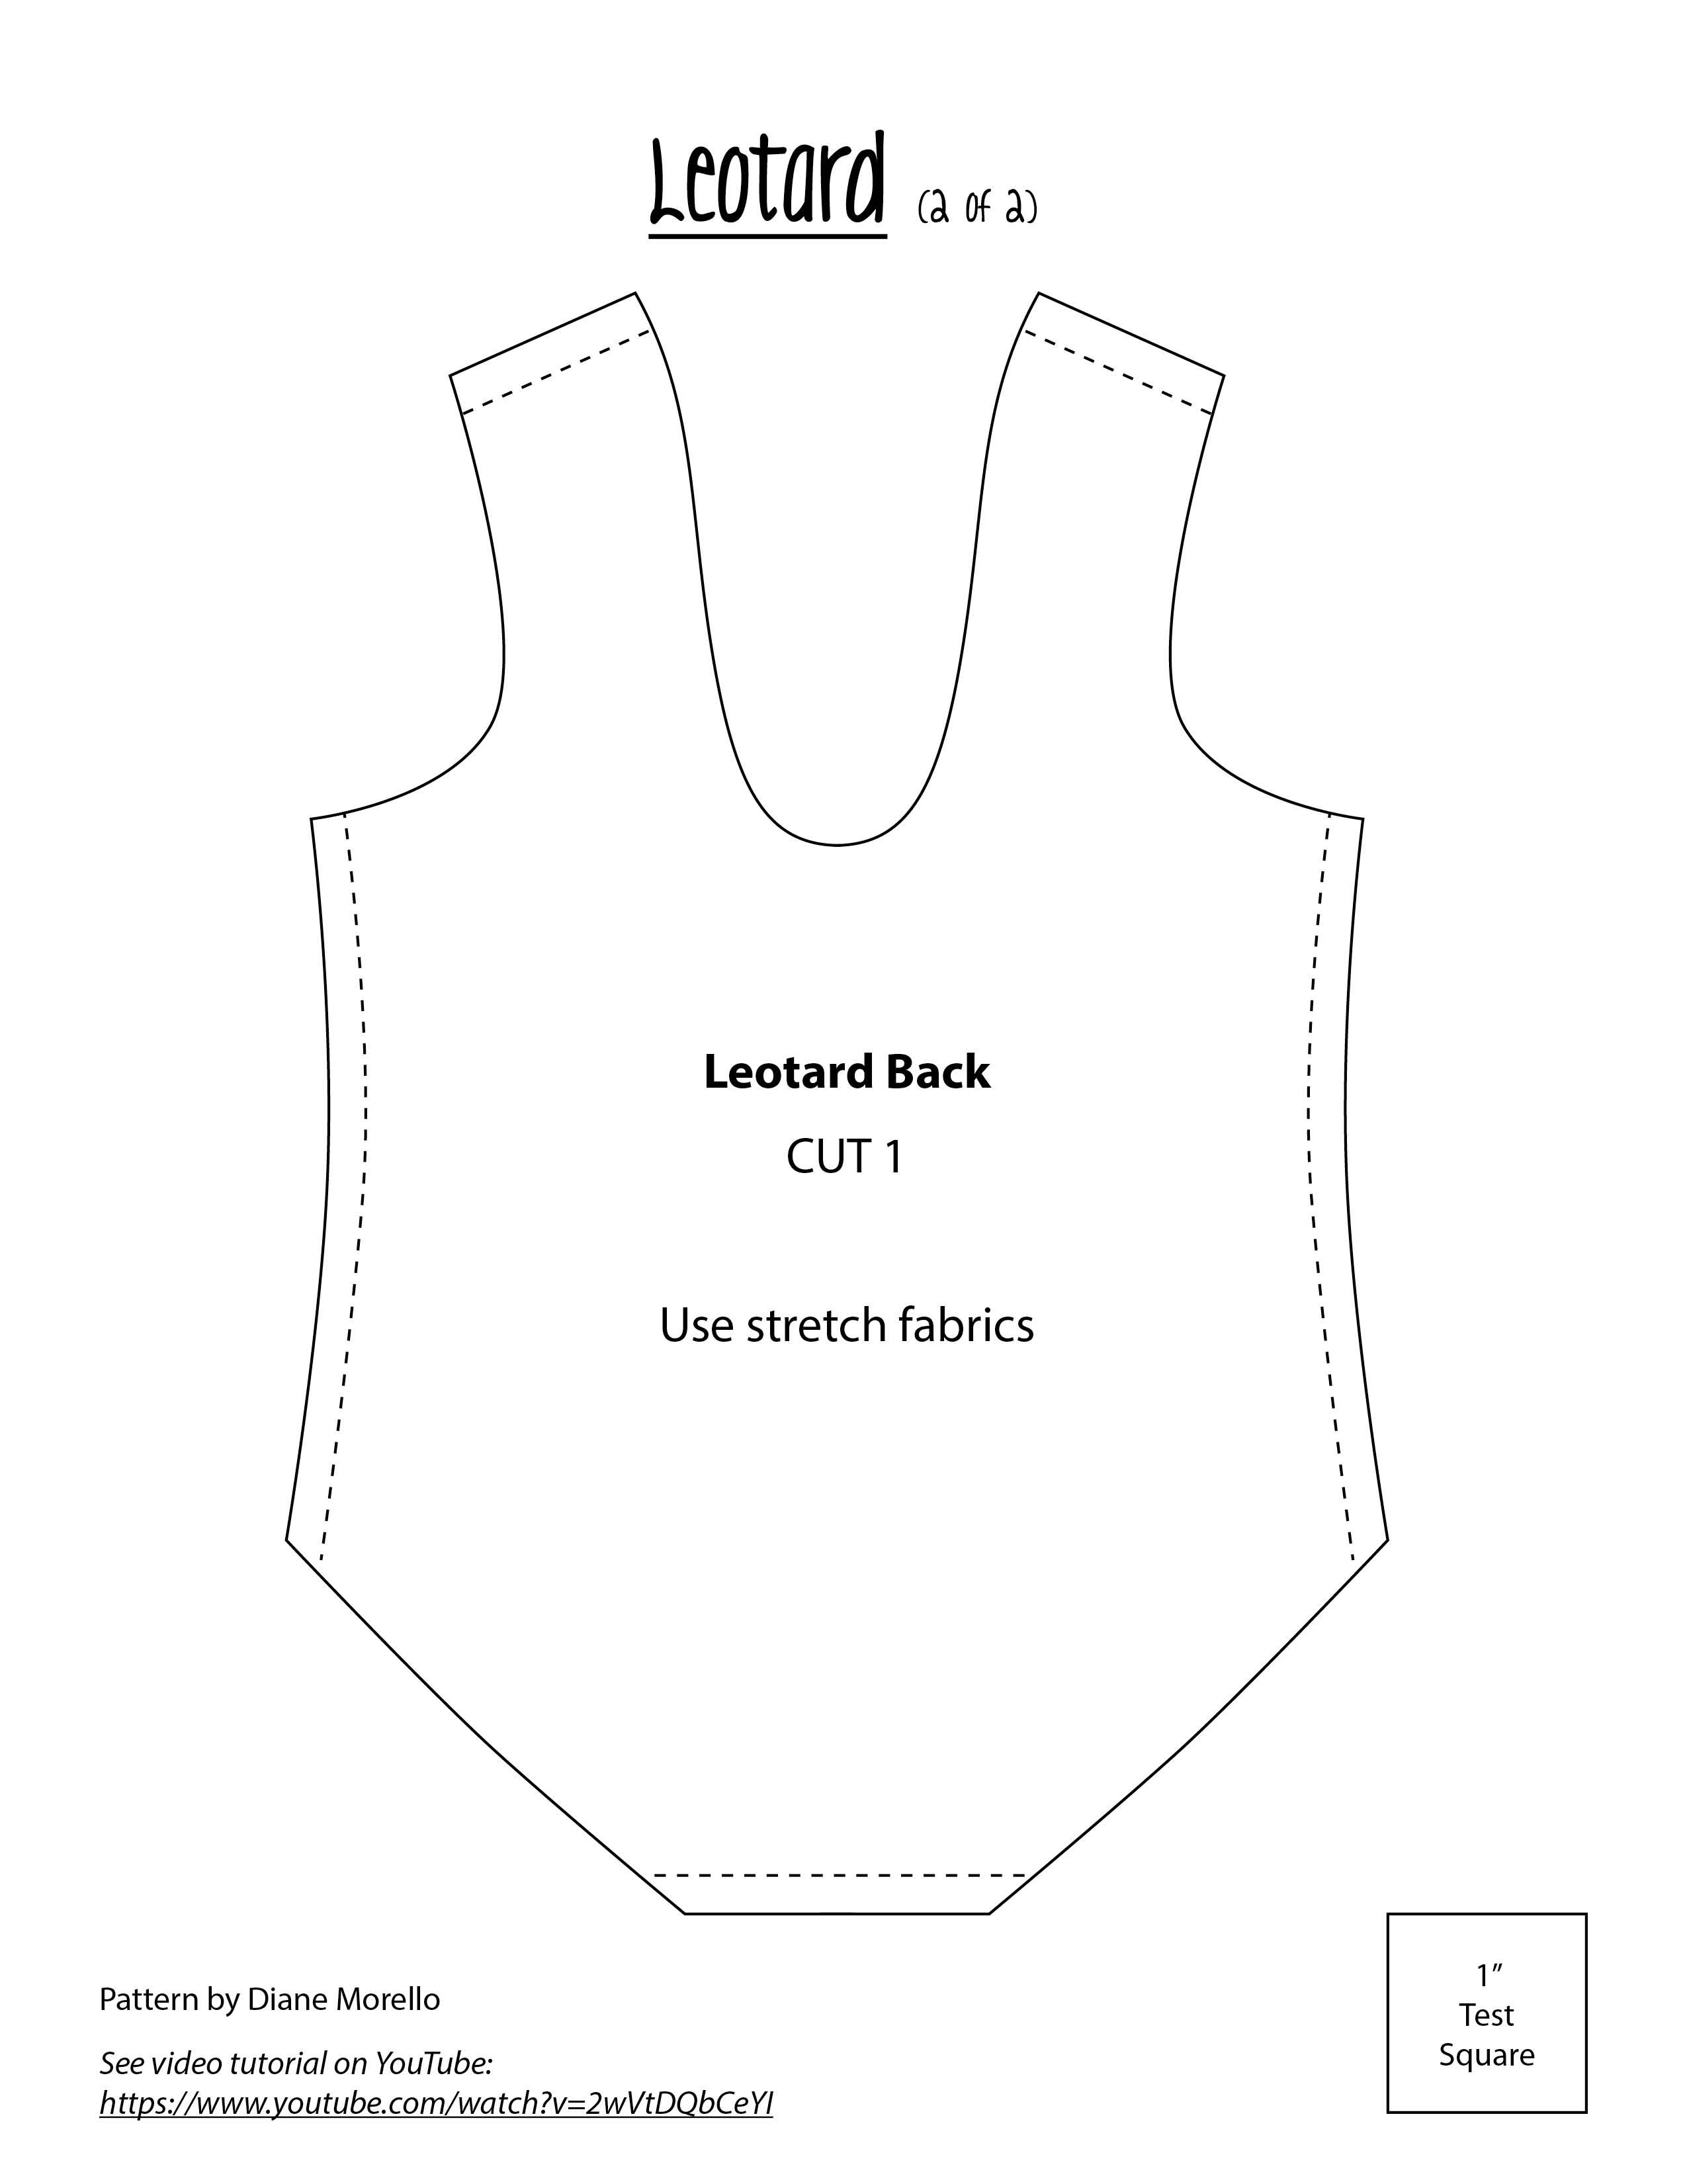 Leotard back. Neckline can be lowered if you want an easier fit.